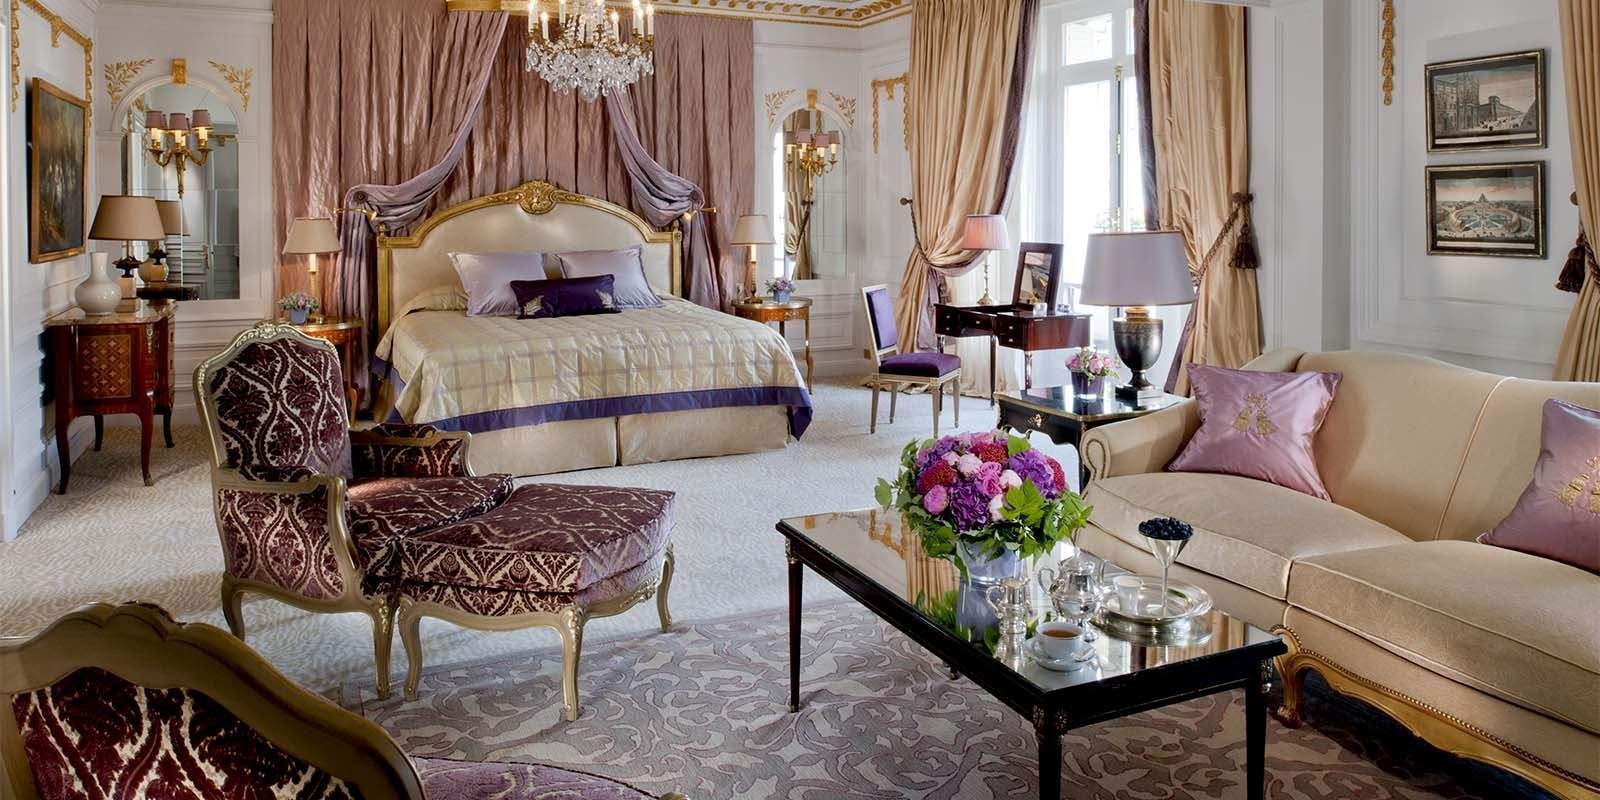 10 of the most expensive hotel suites in the world | regency